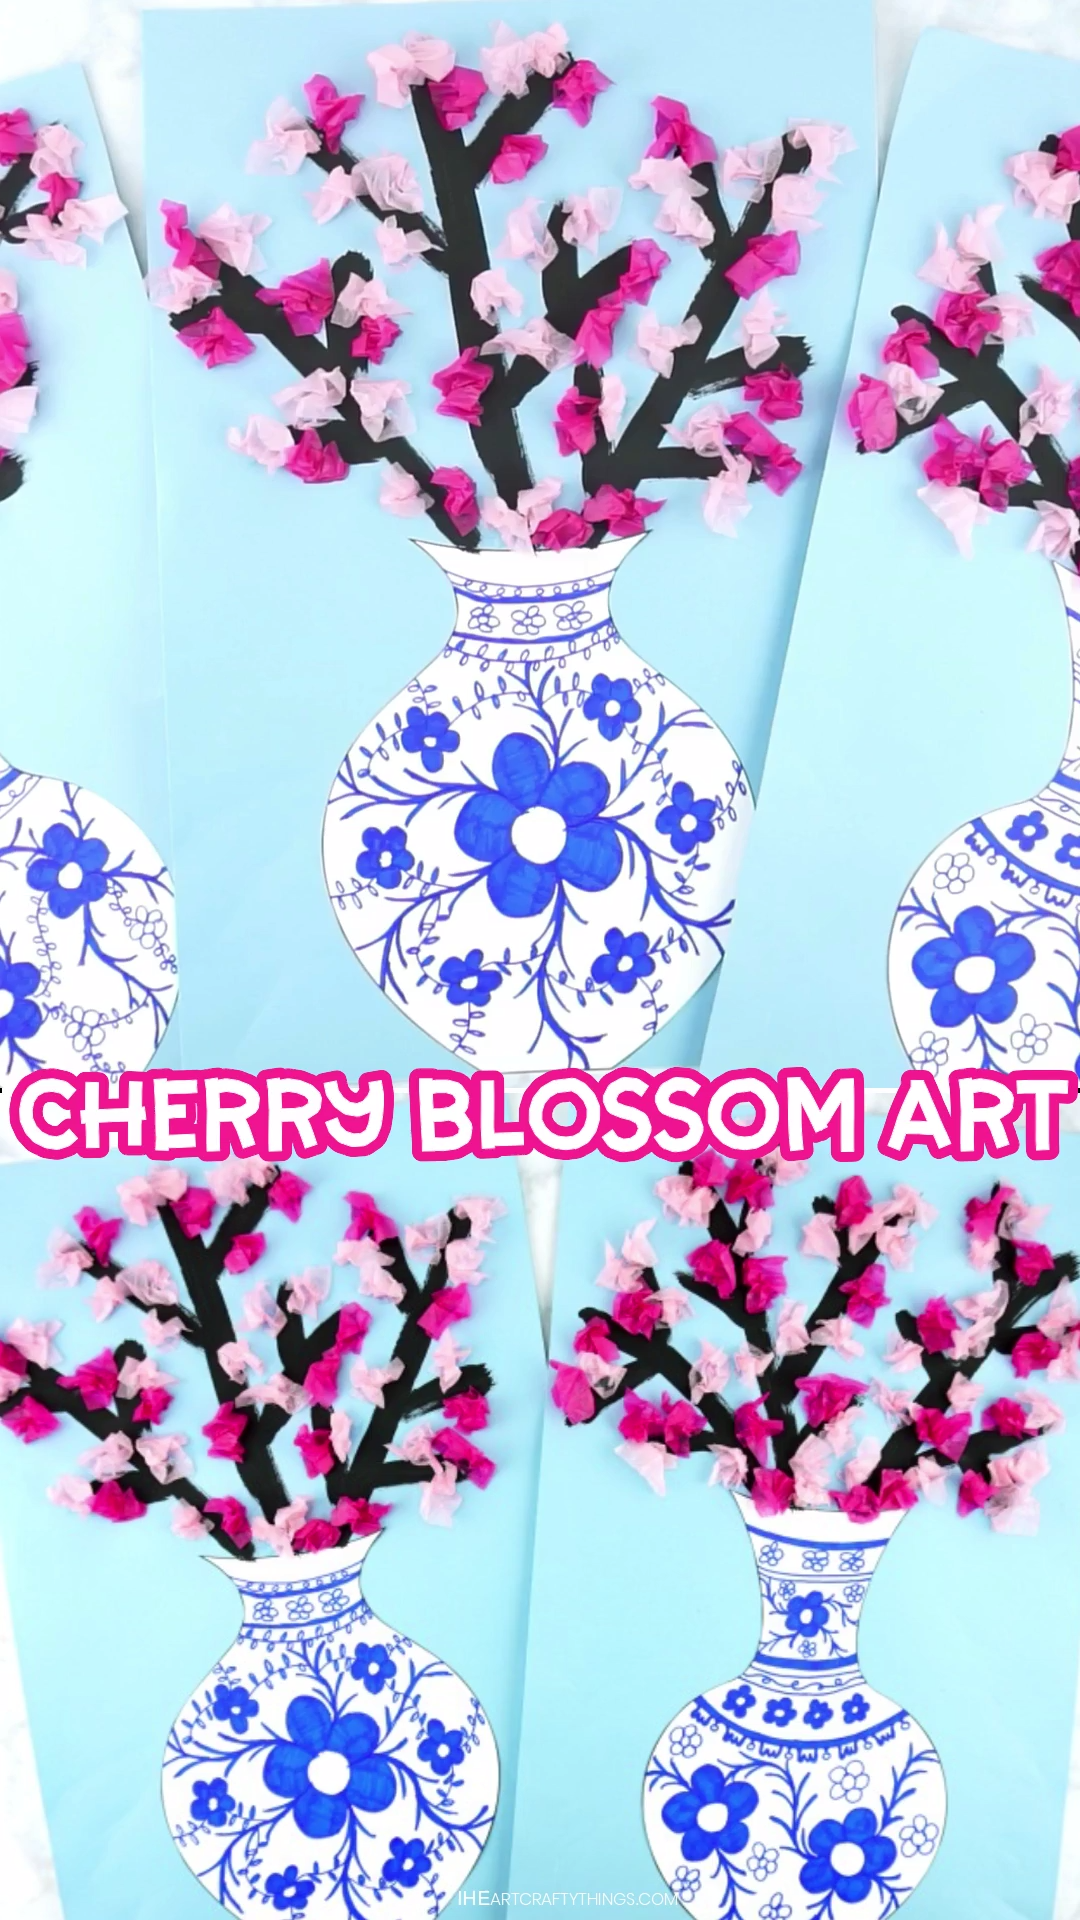 How to Make a Cherry Blossom Art Project- Simple and beautiful cherry blossom art project for kids of all ages. Design